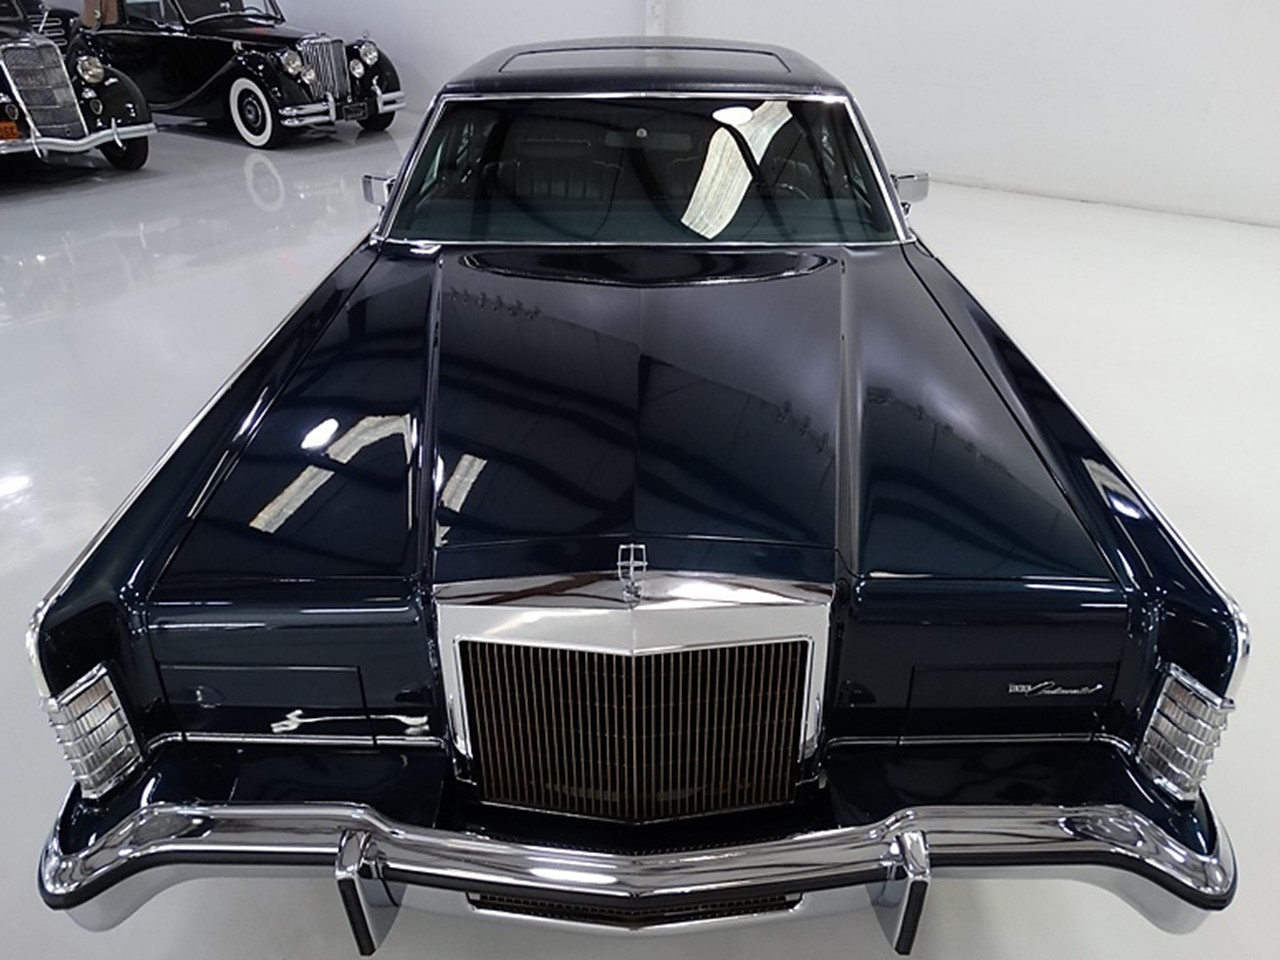 1979 Lincoln Continental Collector's Series 3